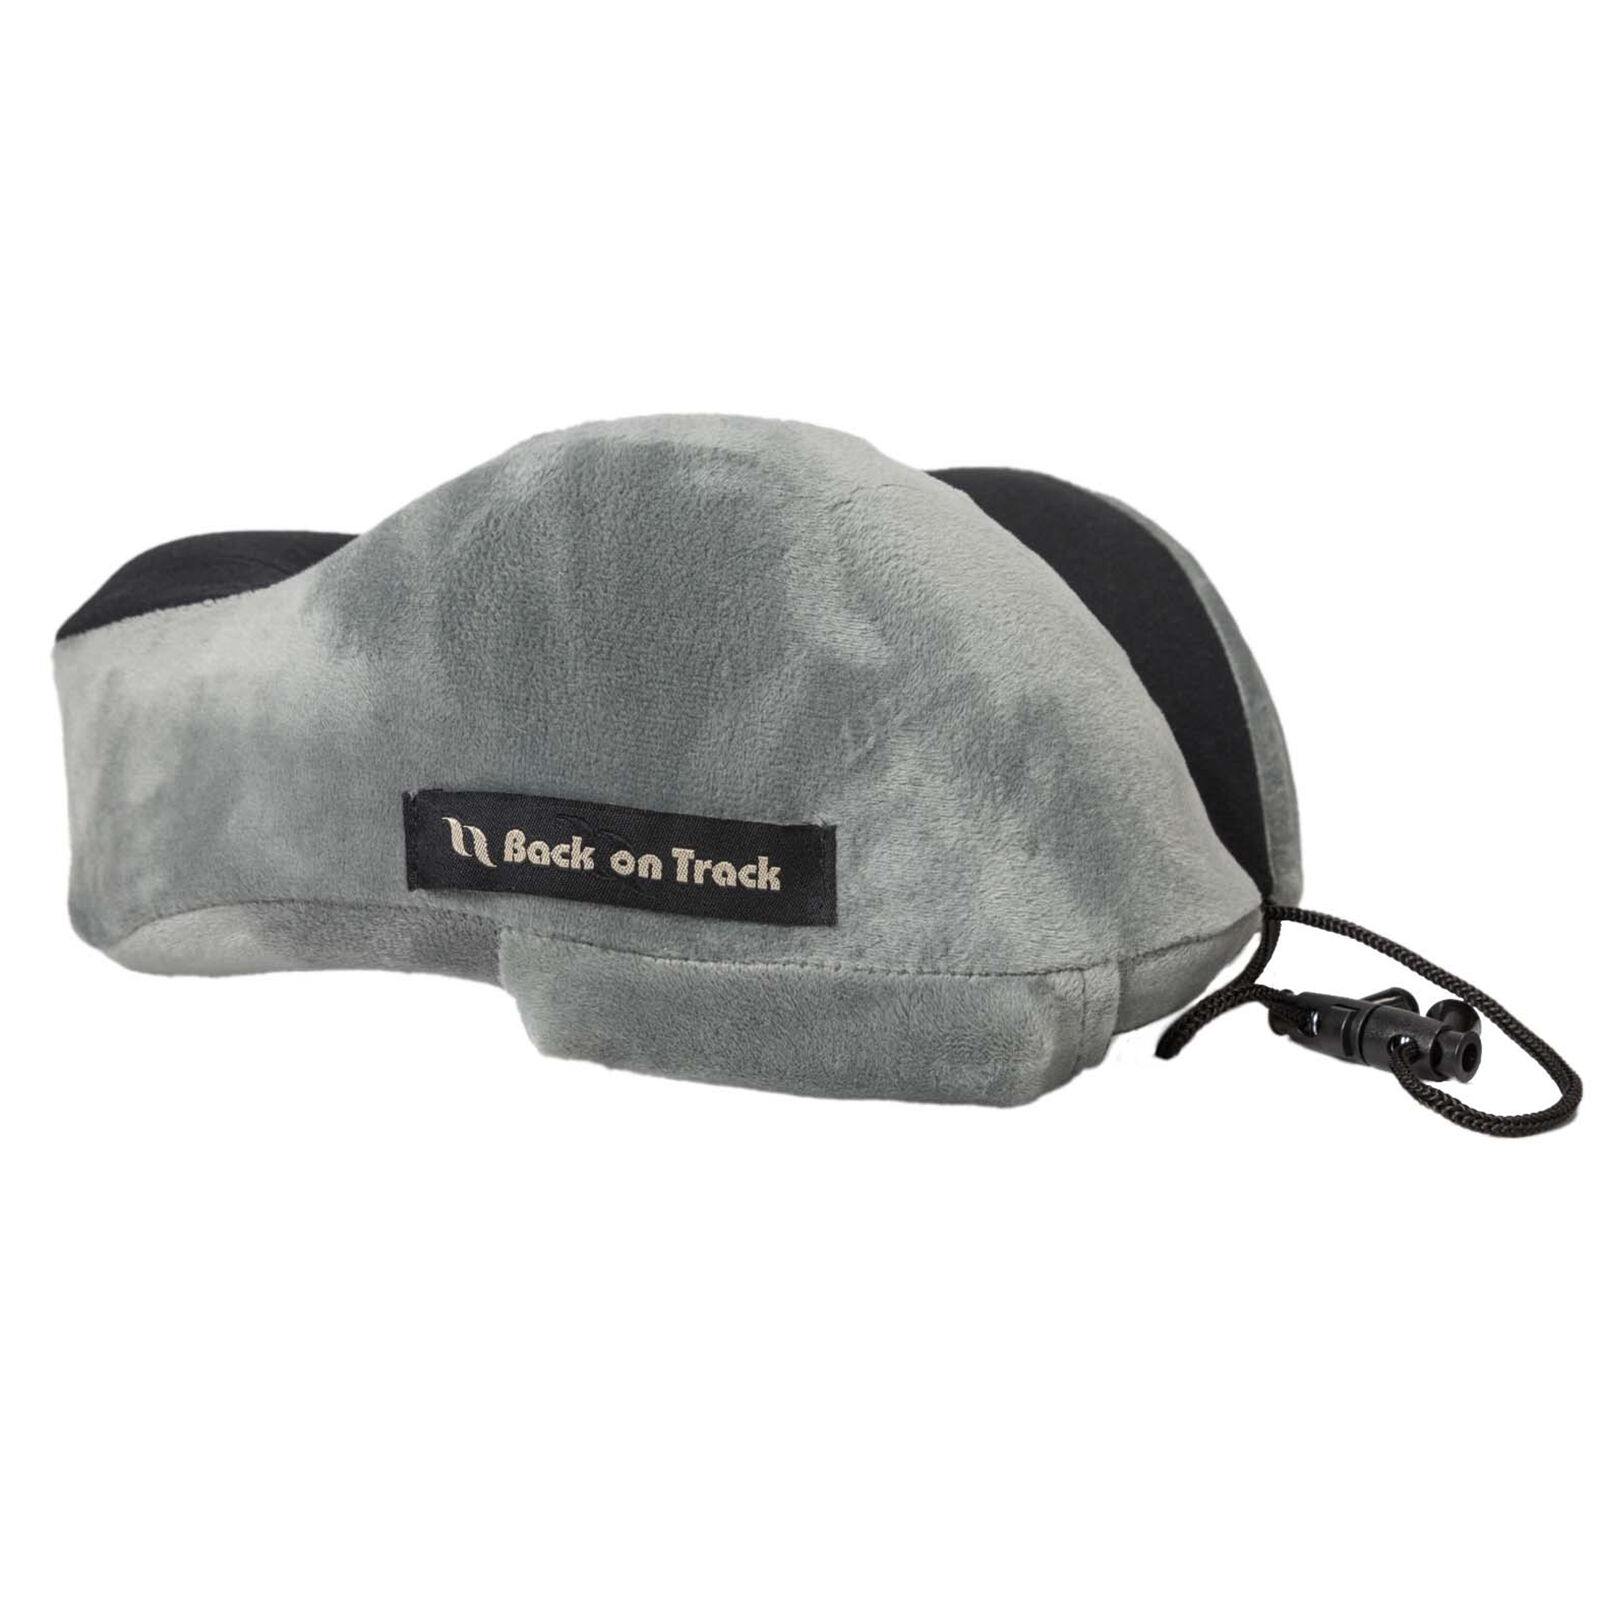 back on track travel pillow